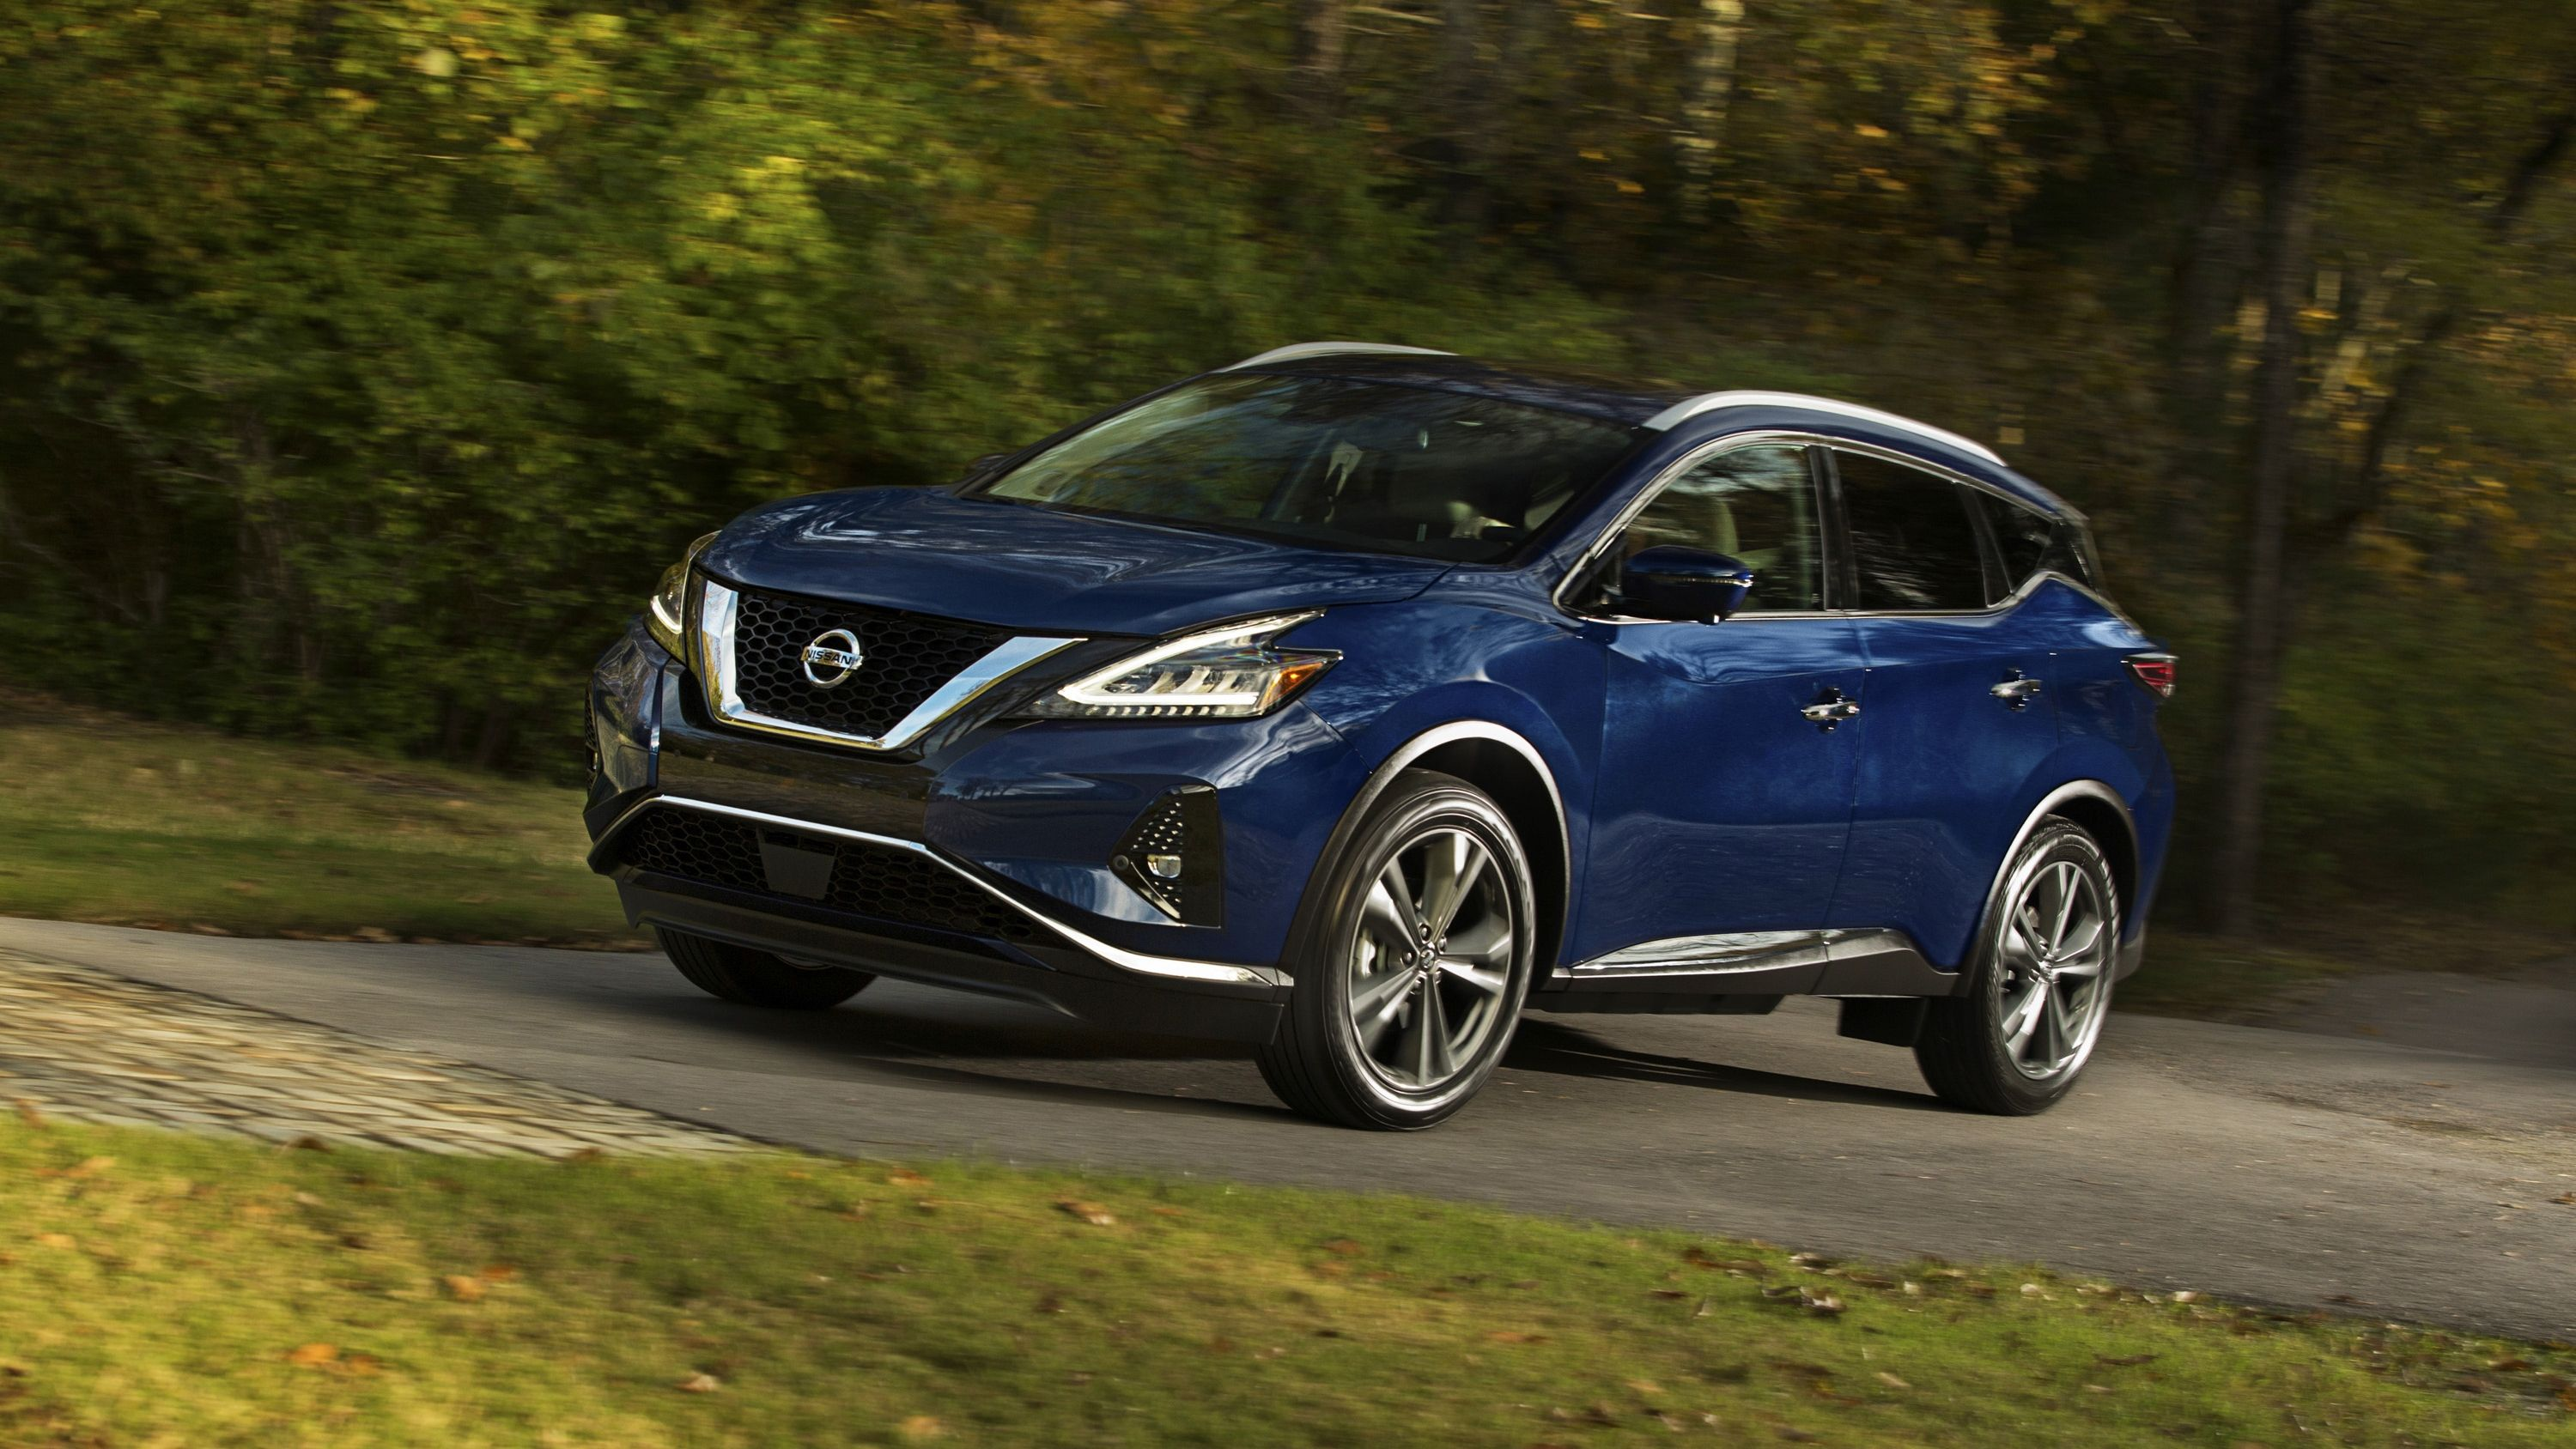 Nissan Gives The 2019 Nissan Murano A Wider Grille Calls It A New Car Nissan Murano Nissan Car